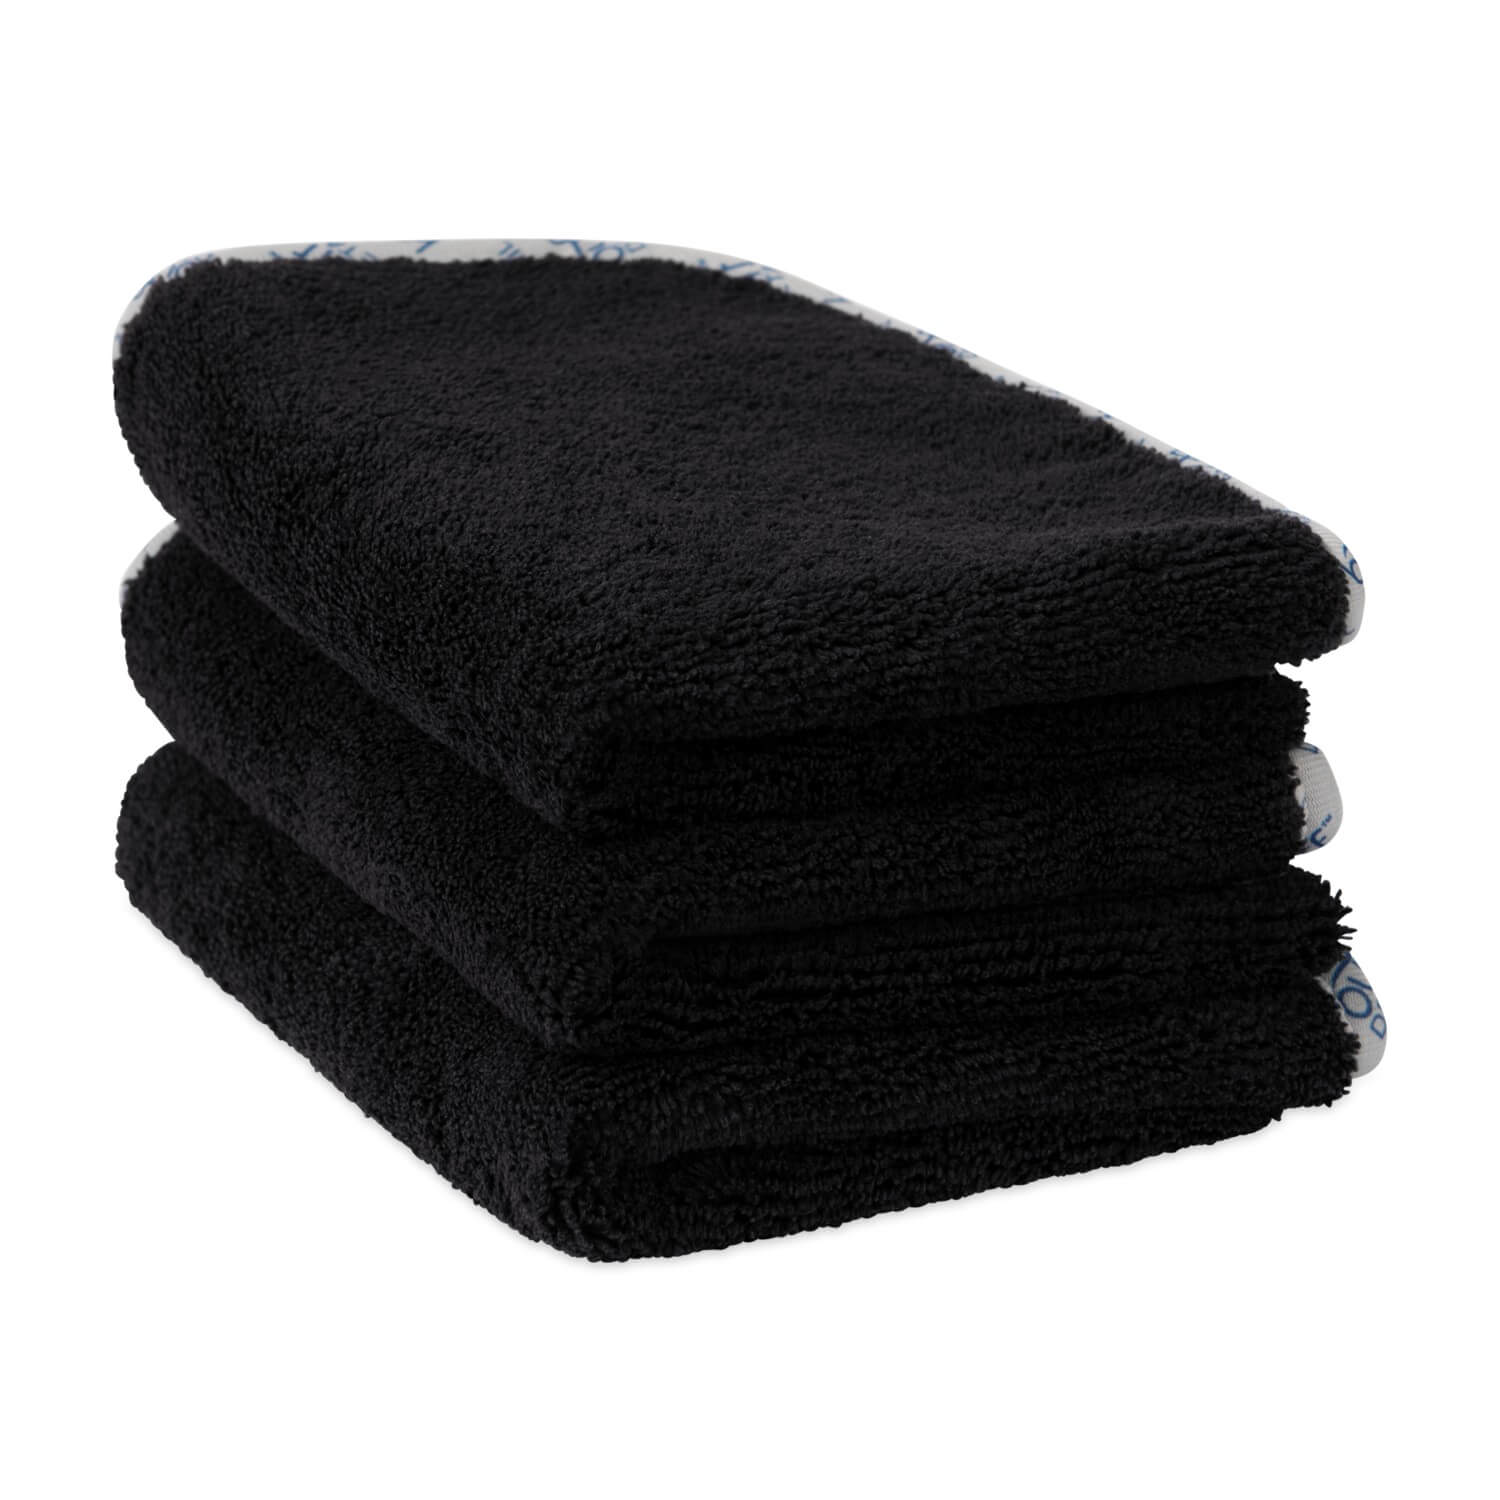 Black Microfiber Detailing Towels